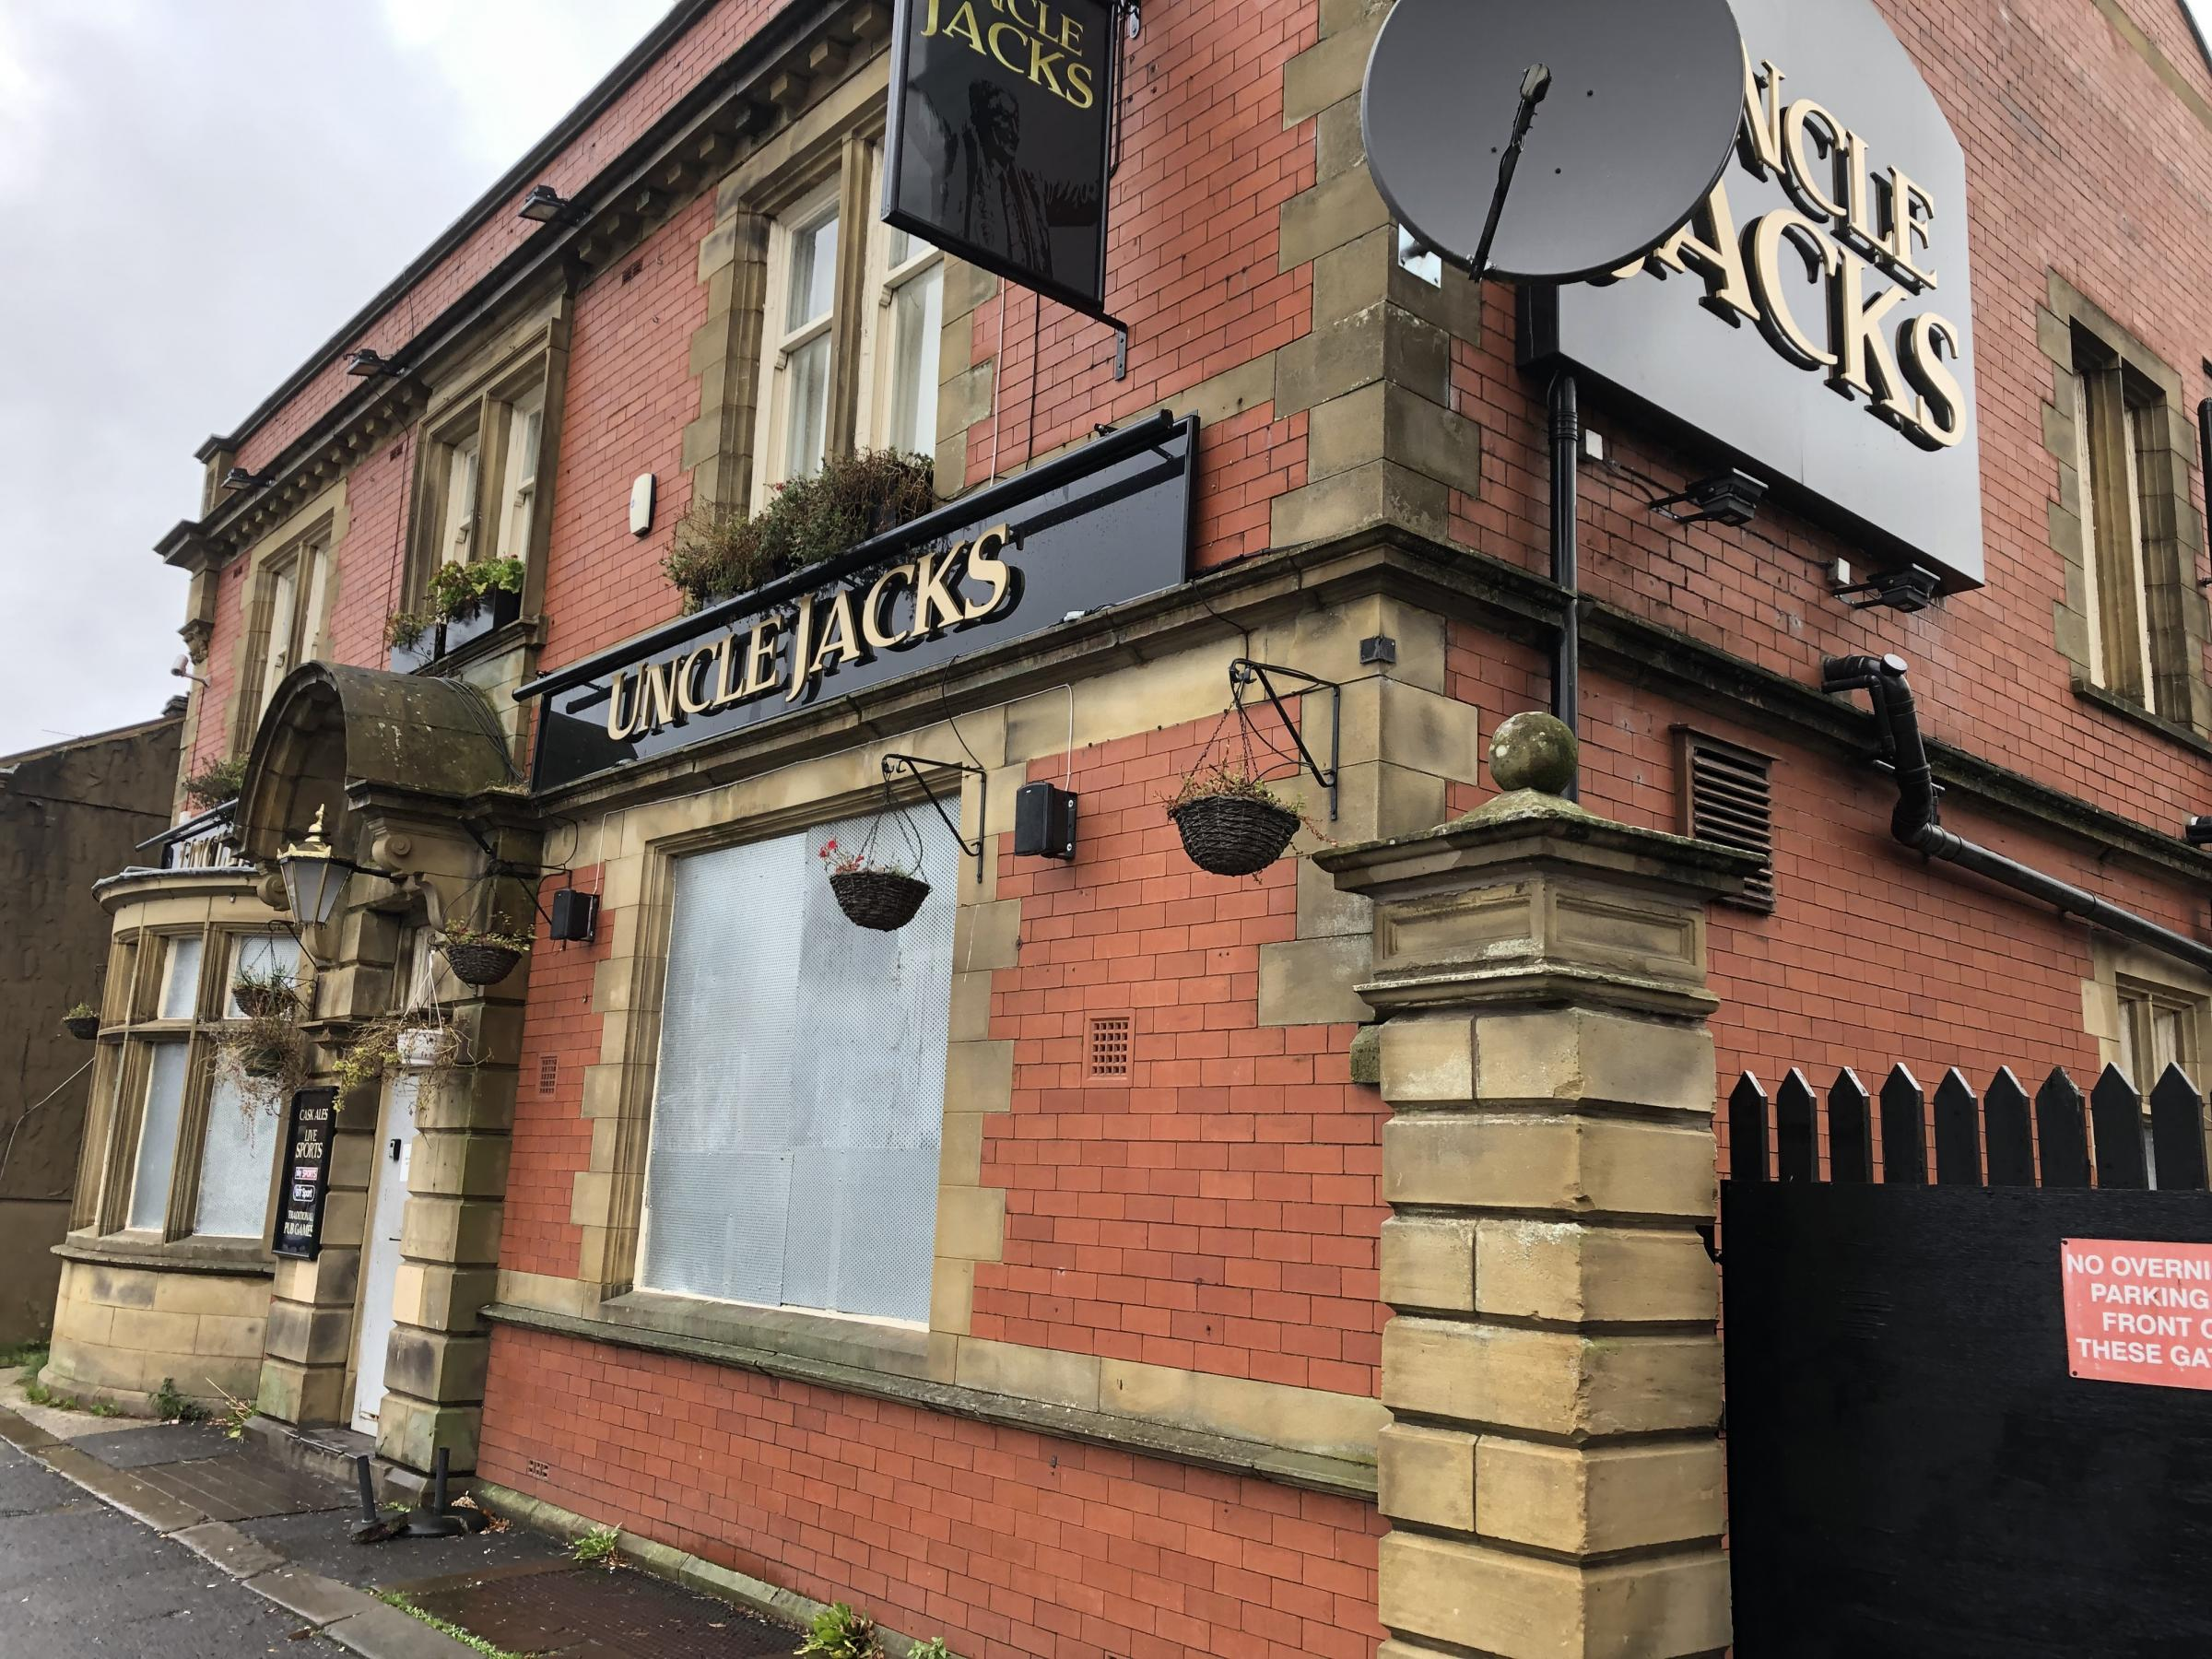 Uncle Jacks pub which is boarded up in Lower Darwen